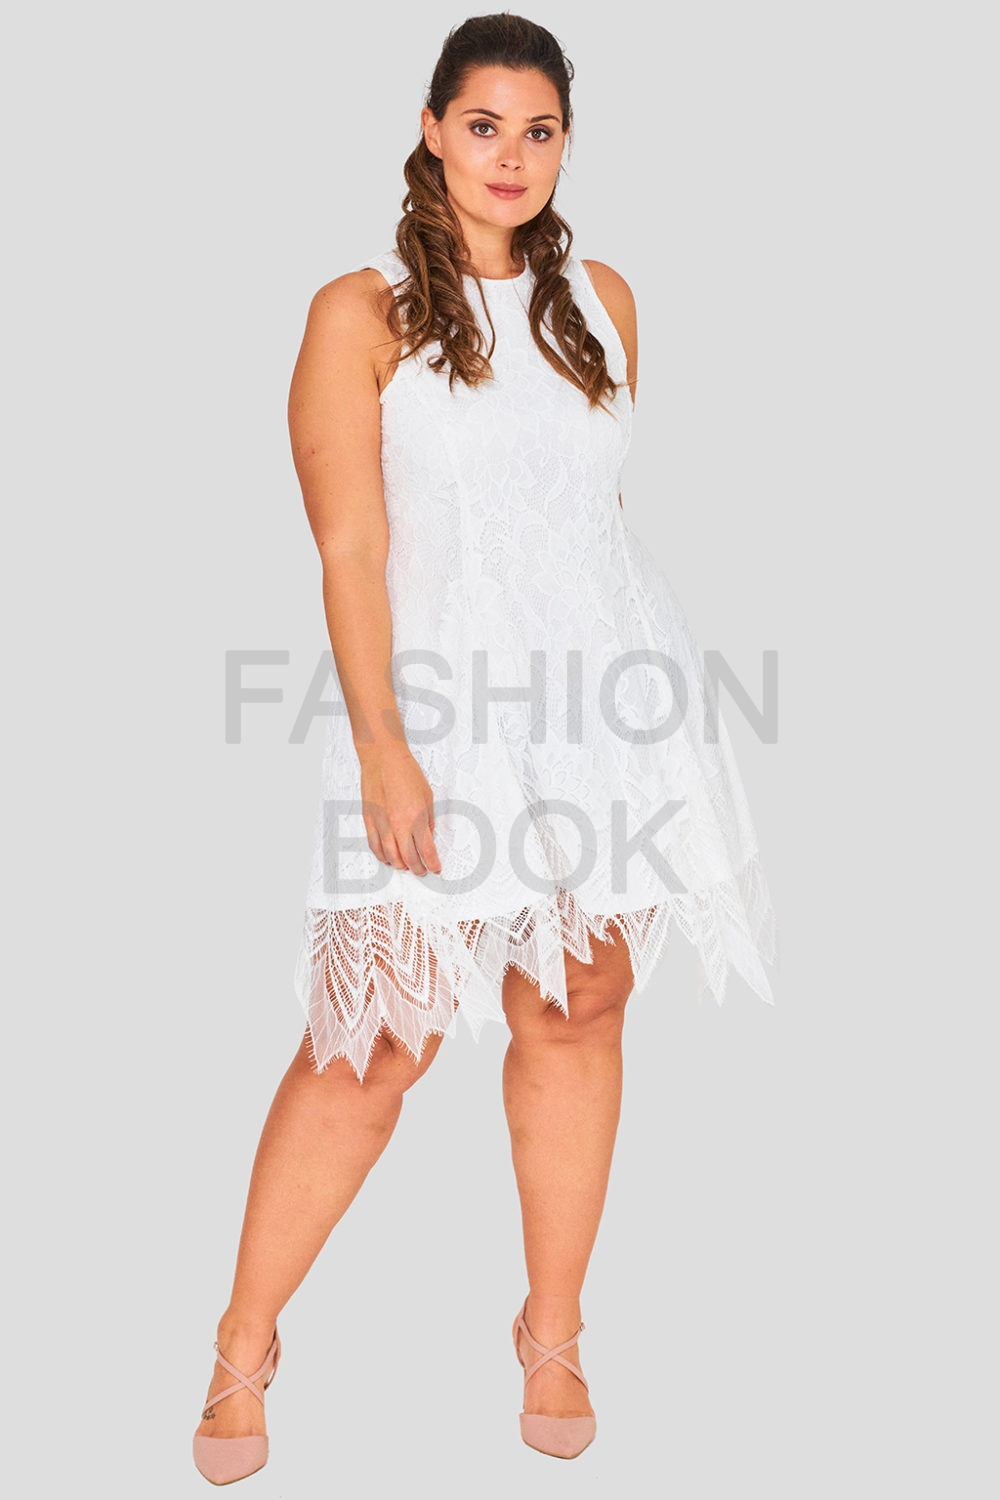 Hand Cut Vintage Plus Size Wholesale Lace Dress